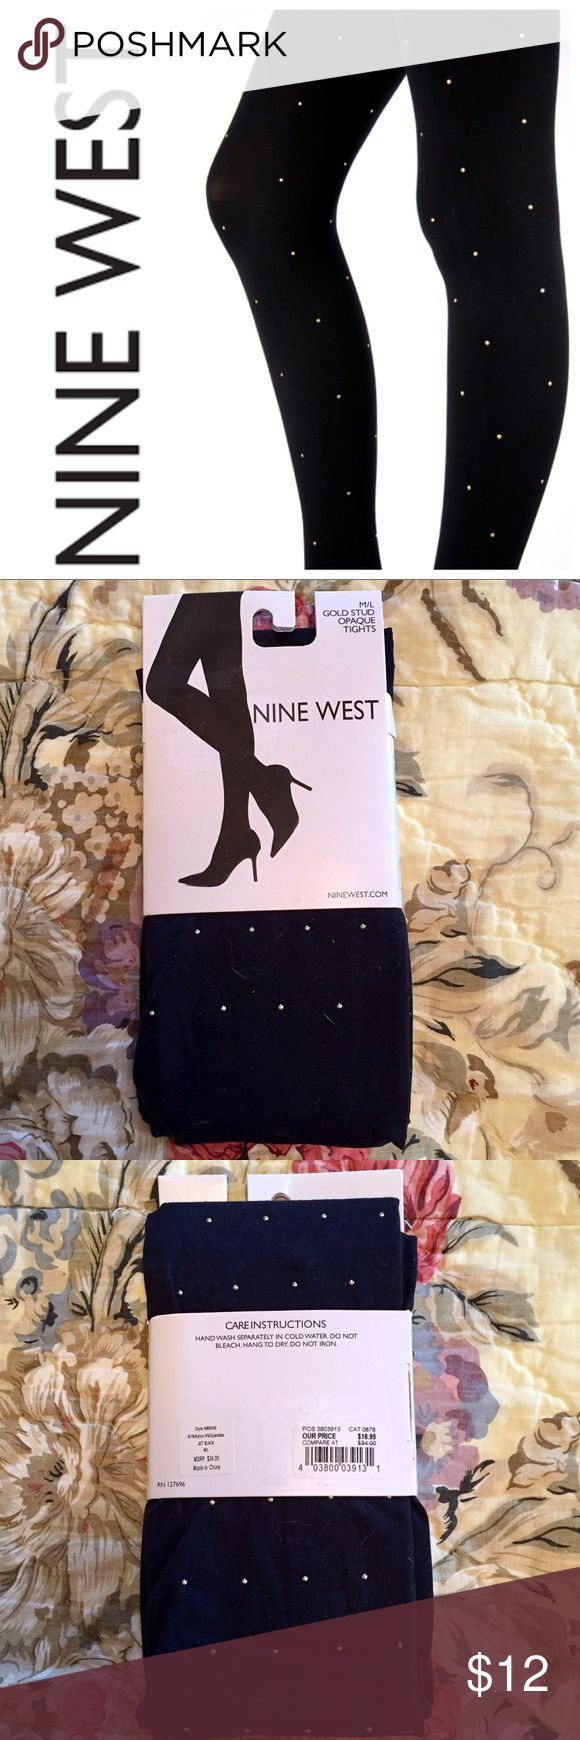 Nine West Gold Stud Black Opaque Tights M/L NWT Brand new, unopened, in original packaging. Nine West gold stud opaque black tights, size M/L. Perfect condition! Bundle with two other items for automatic 25% discount and combined shipping! Nine West Accessories Hosiery & Socks